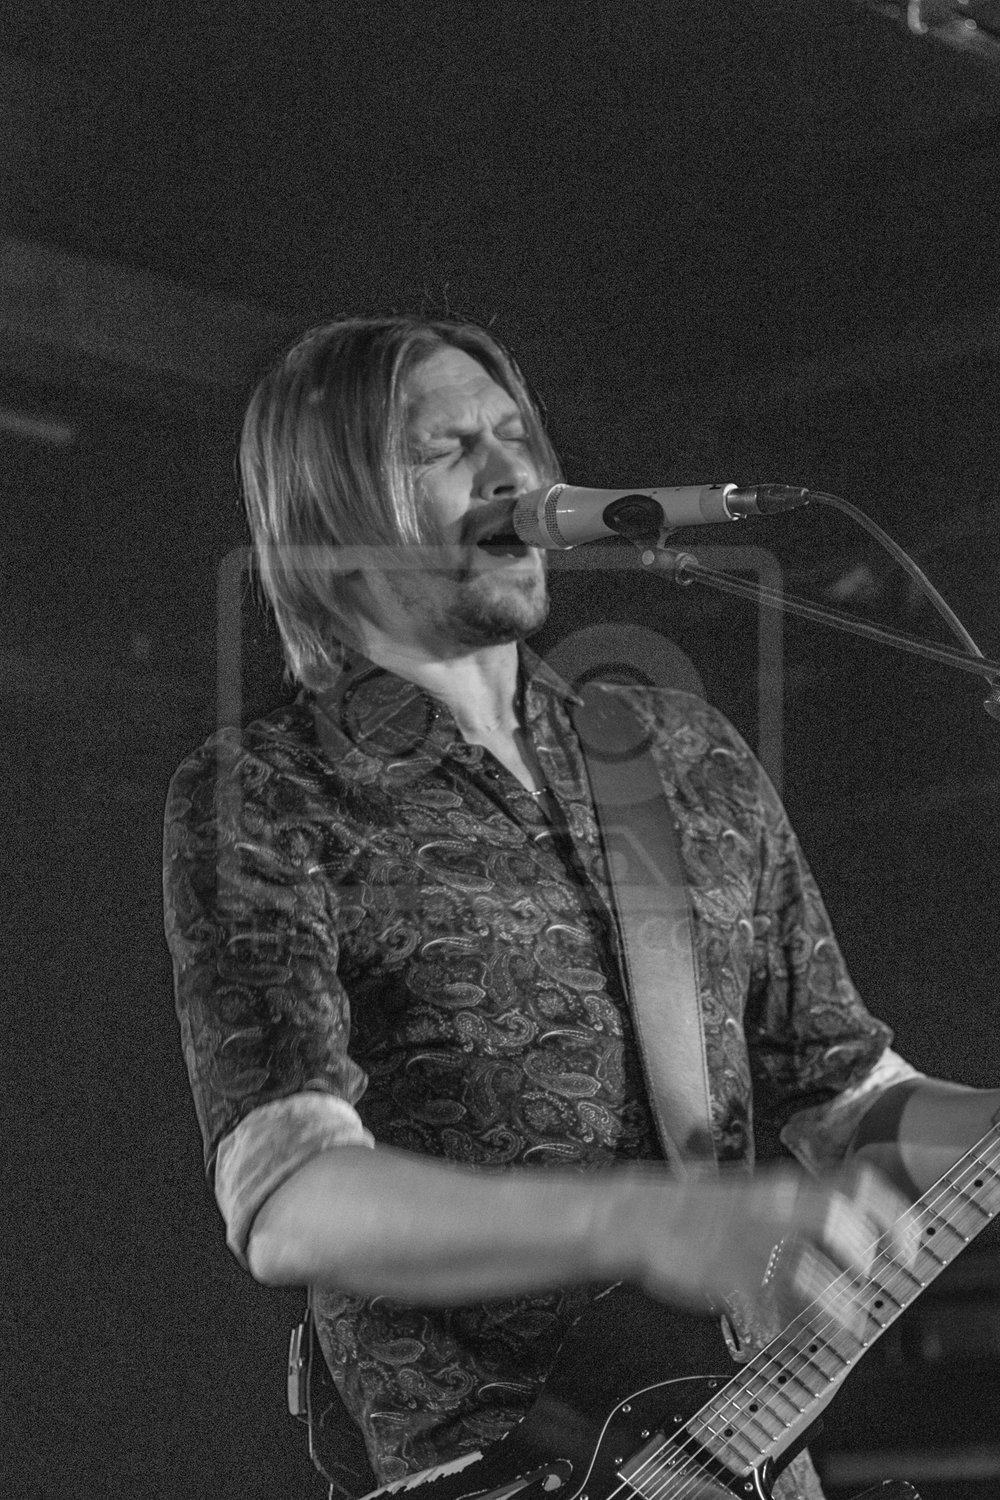 9 - von hertzen brothers - Newcastle University SU, Newcastle - 08-12-18 Picture by Will Gorman Photo.JPG